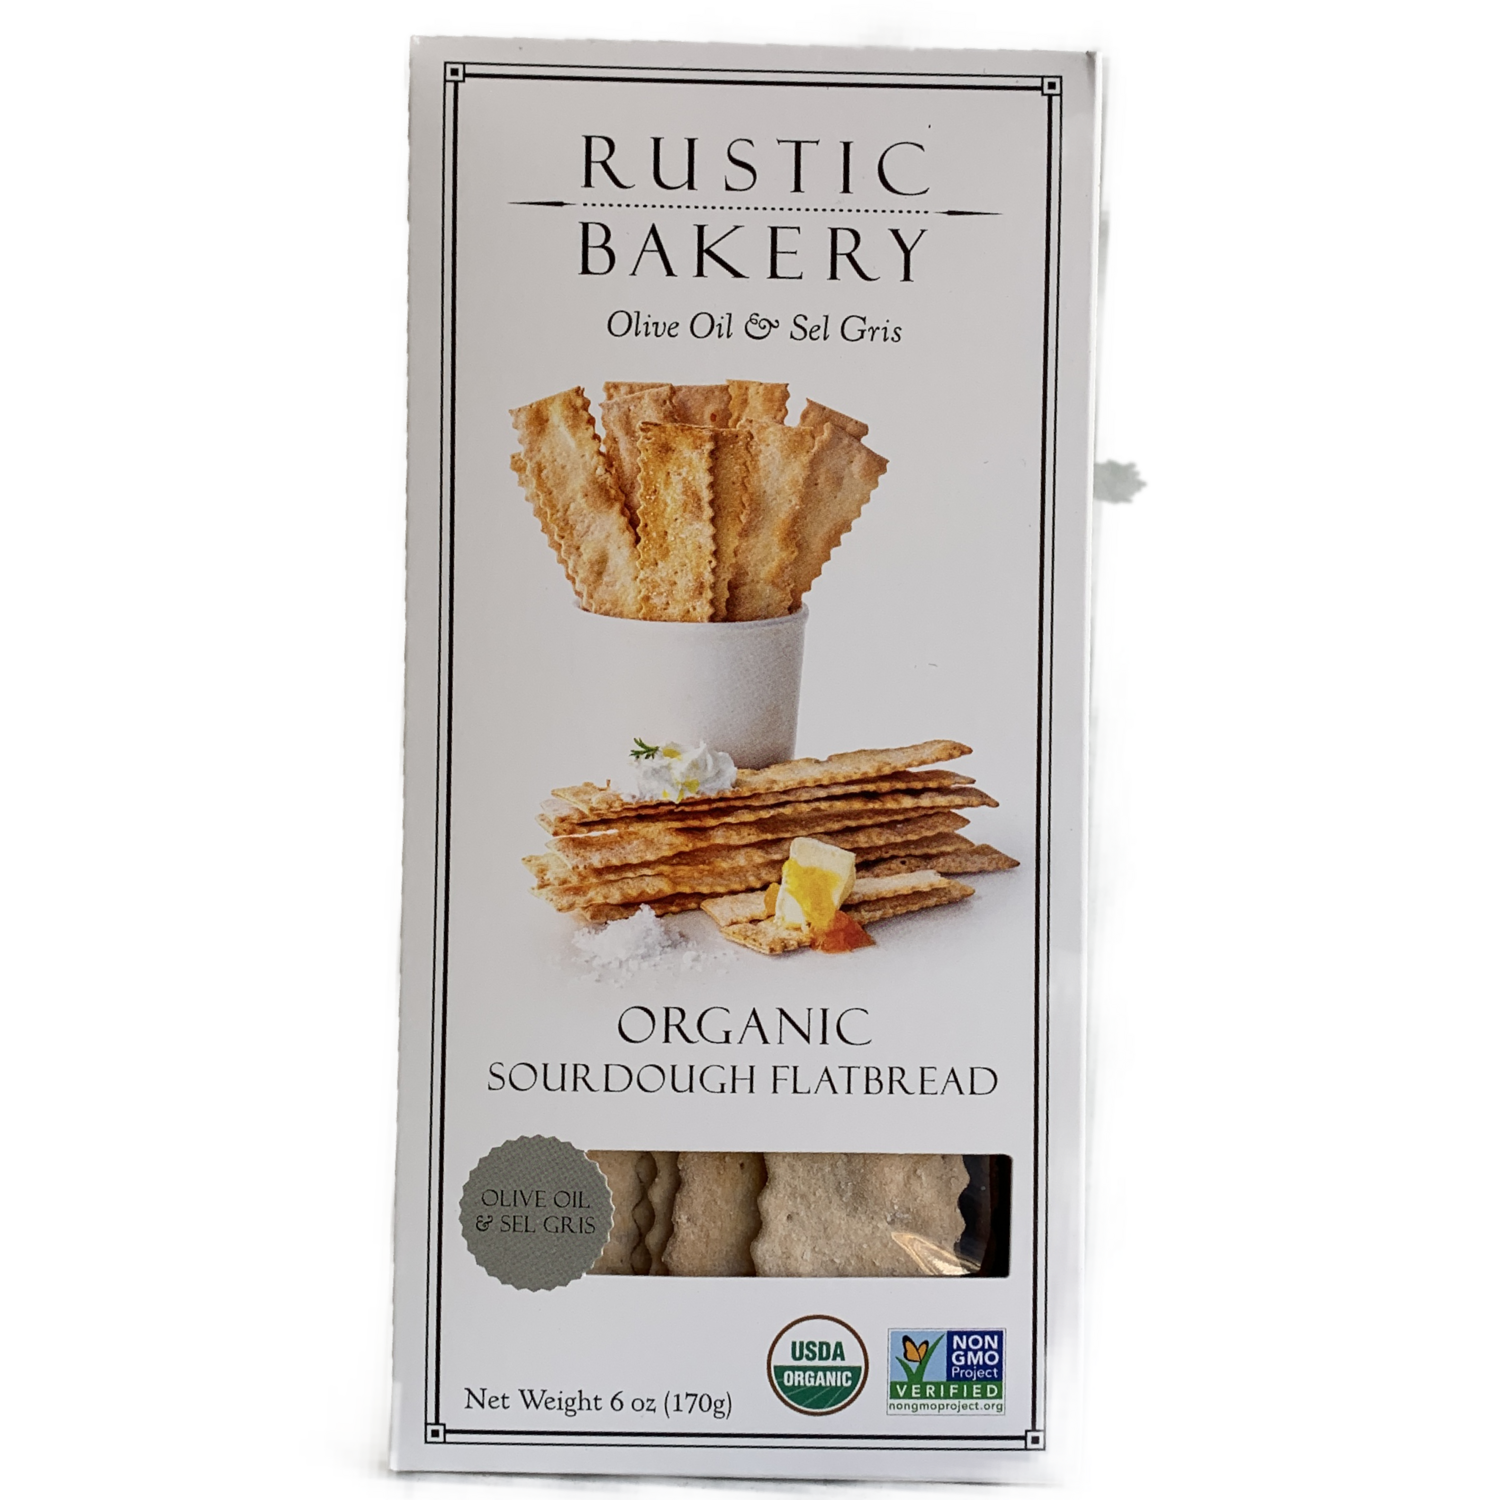 Rustic Bakery Olive Oil + Sel Gris